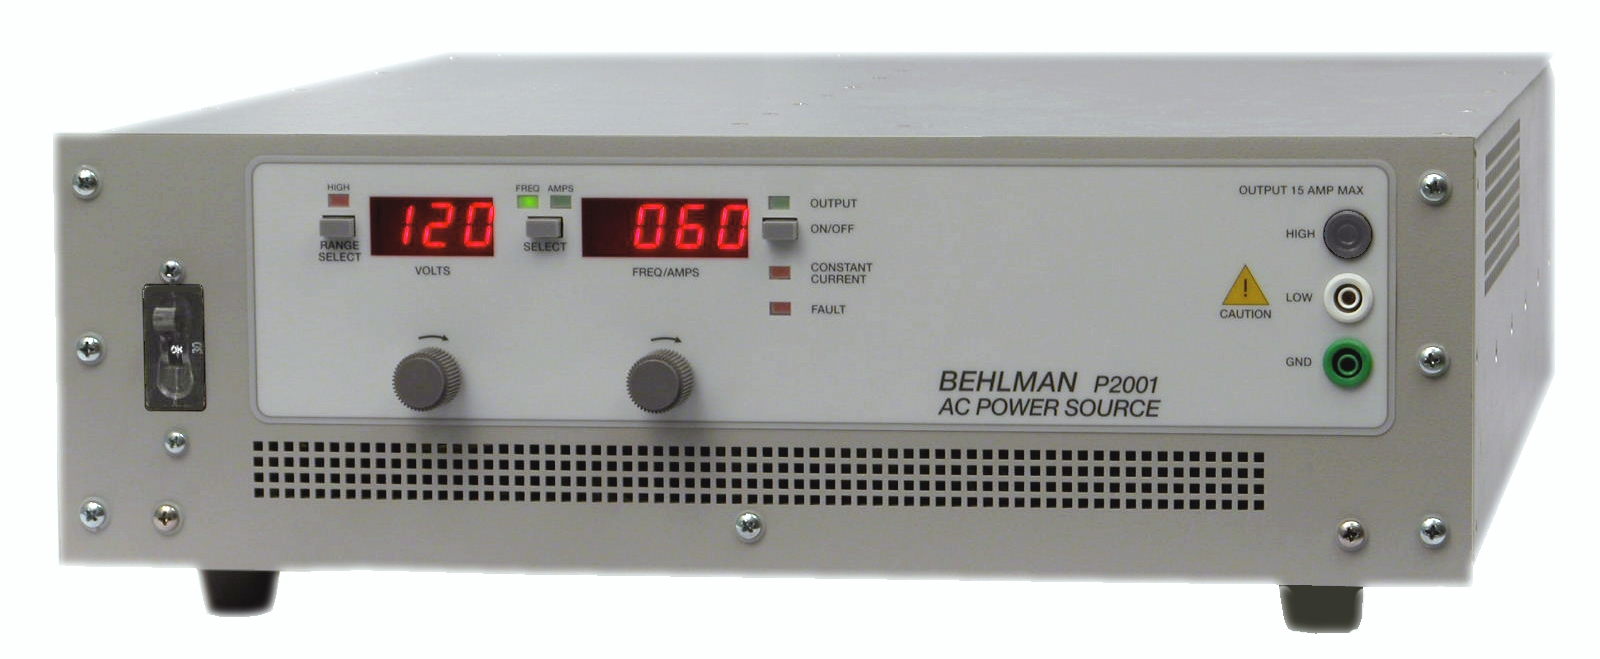 New Behlman 2 Kva Ac Power Source Expands Line Of Low Cost Solid High Current Supply Dc The Provides Clean Regulated With Operator Selectable Voltage From 0 135 Or 270 Vac And Adjustable Frequency